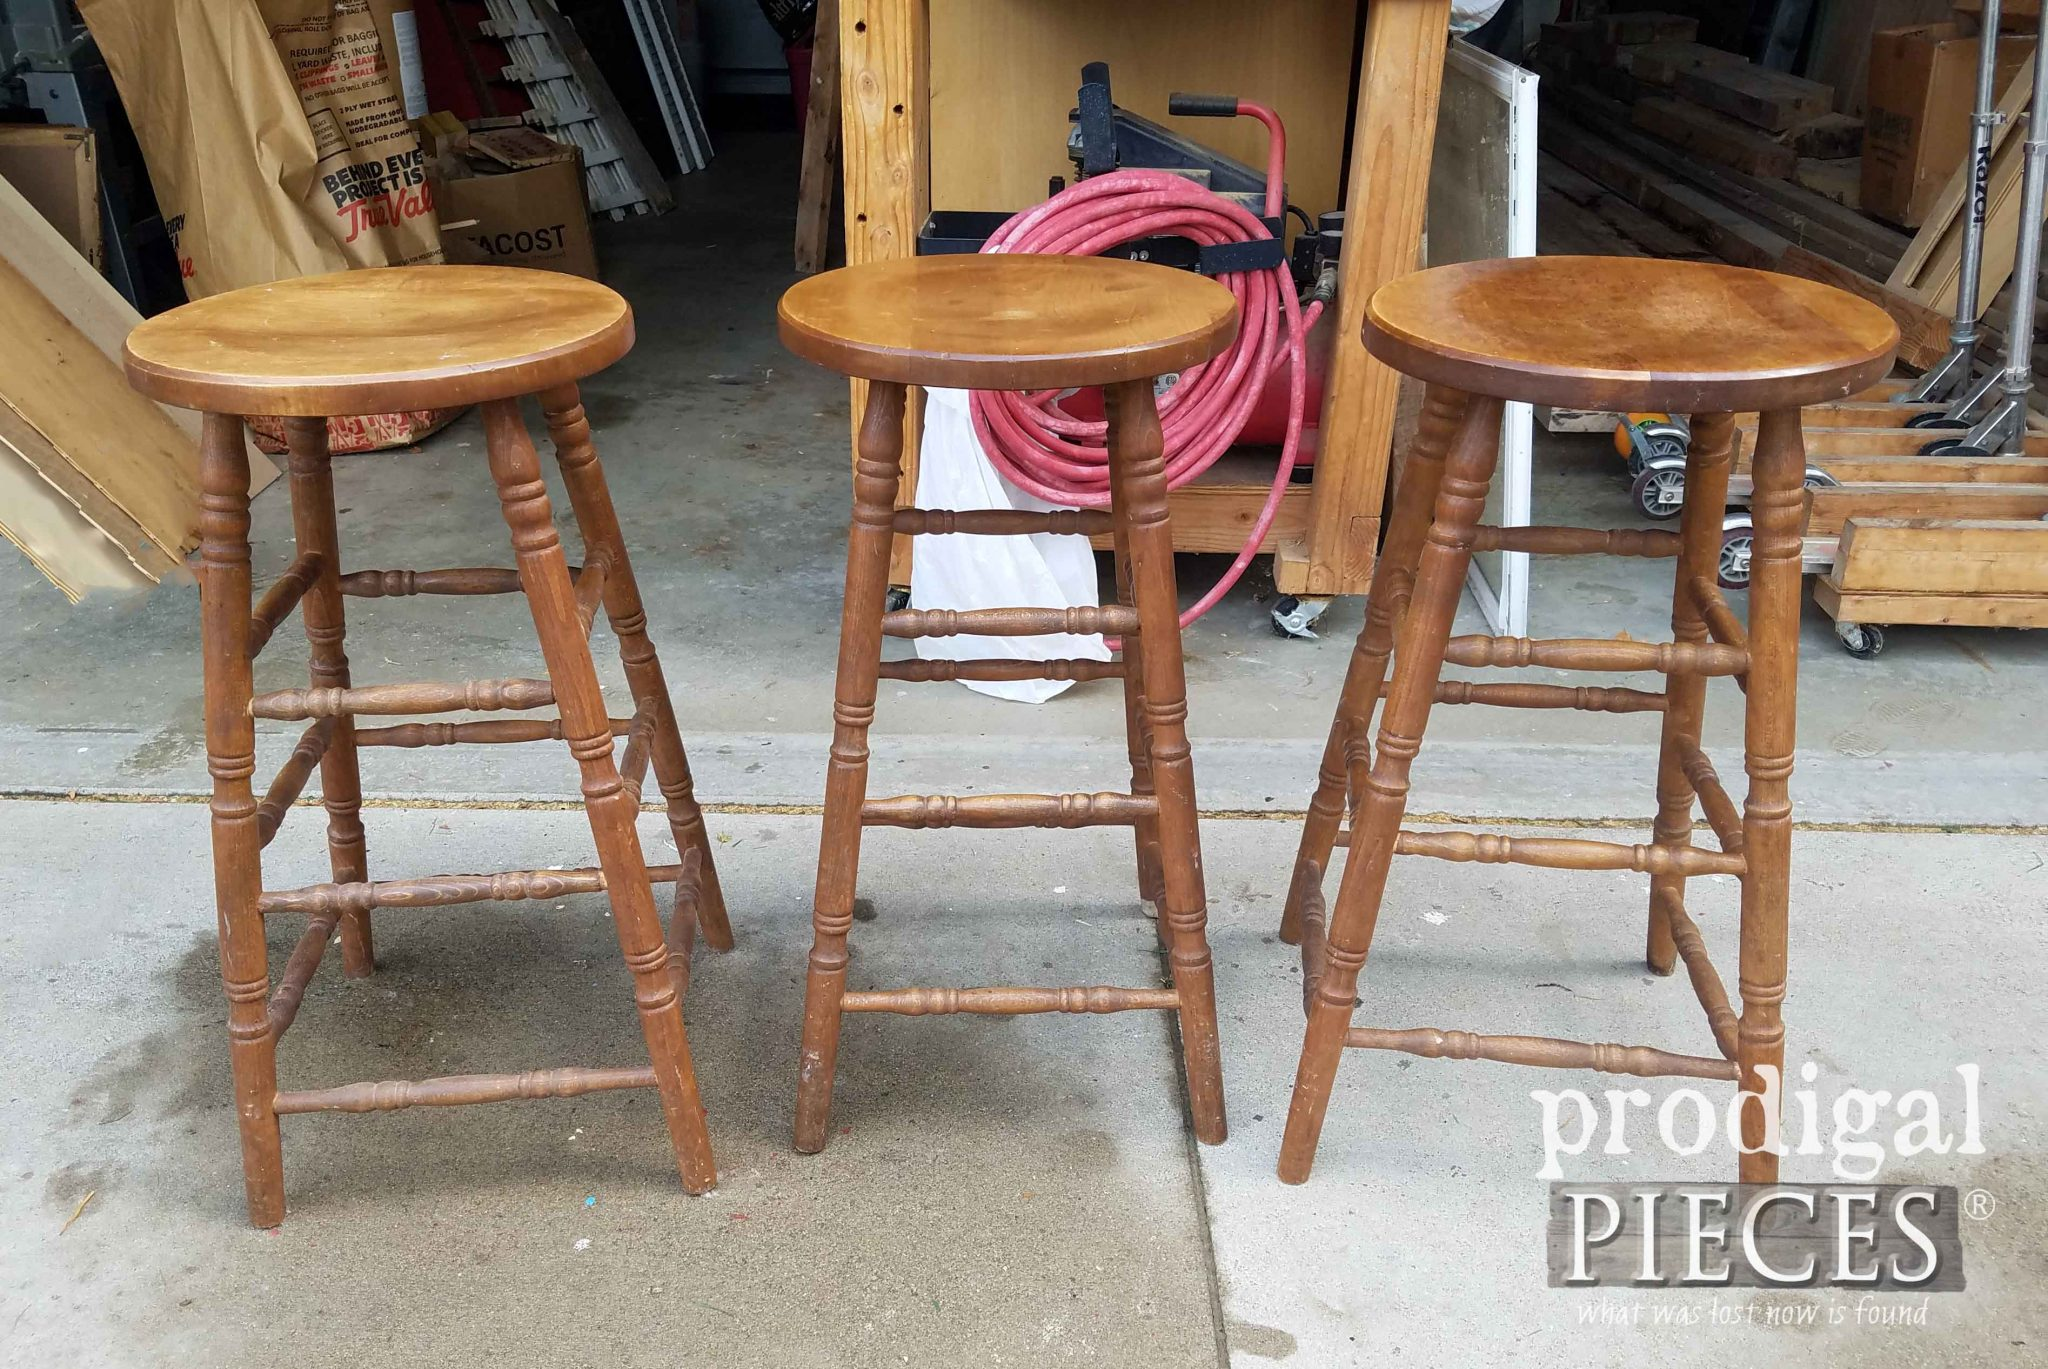 Bar Stools Before Makeover by Prodigal Pieces | prodigalpieces.com